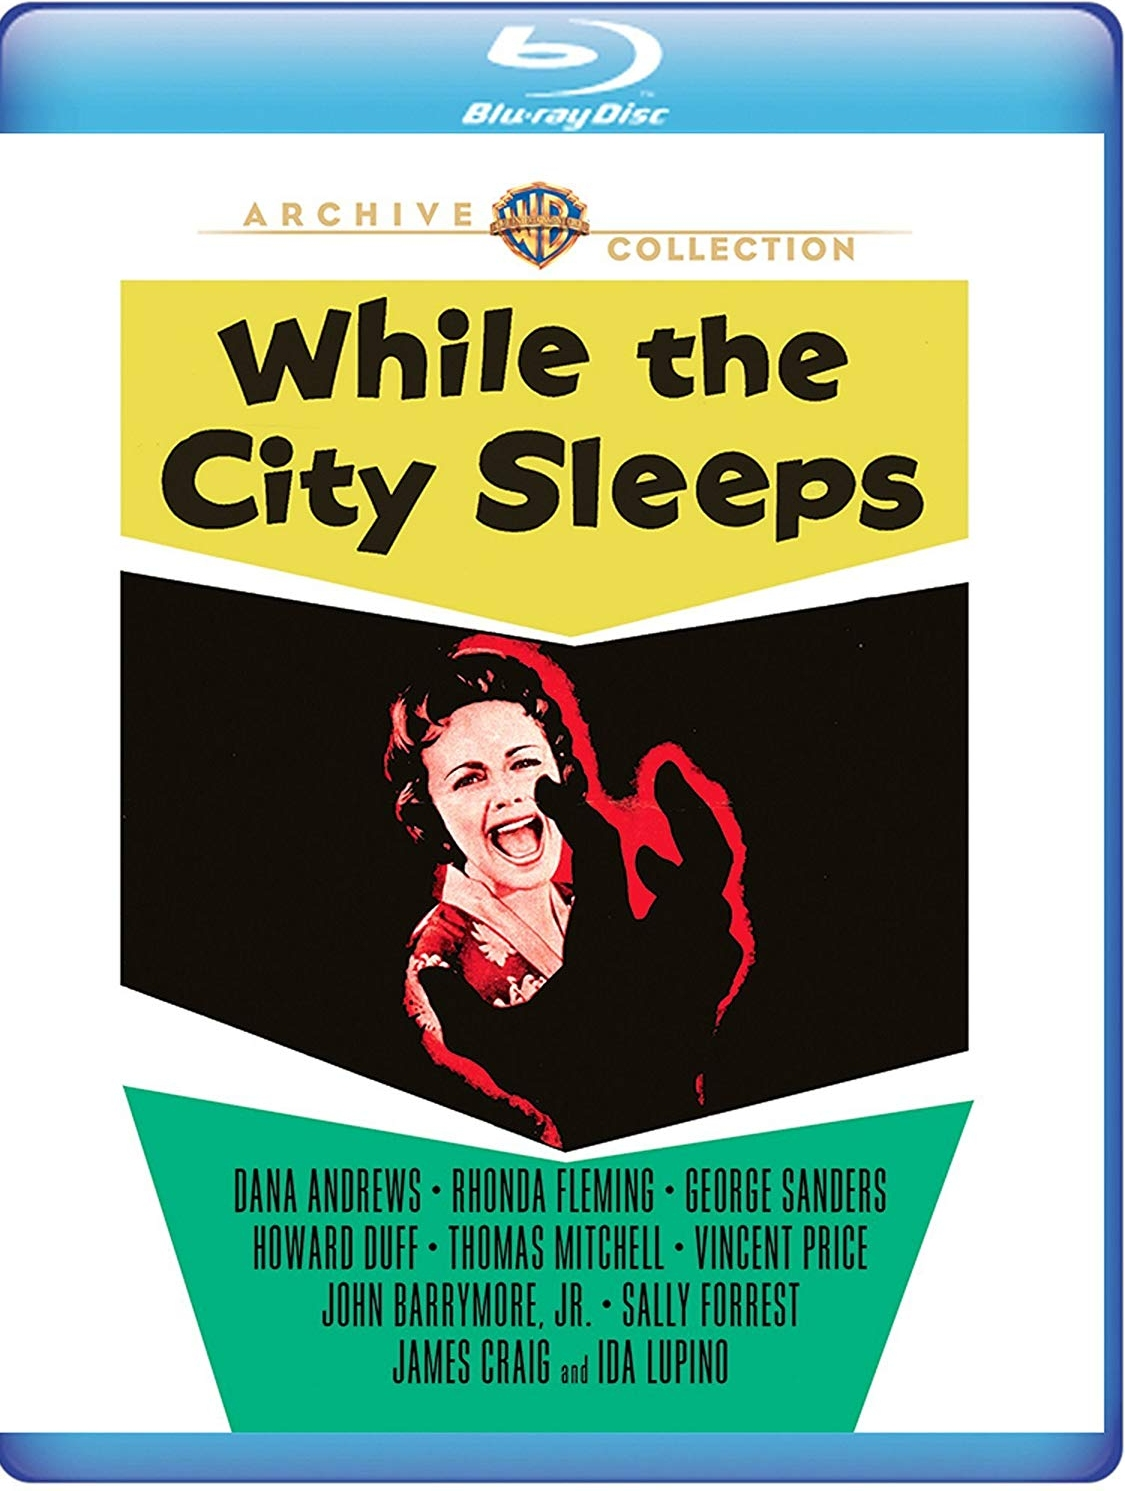 While the City Sleeps - Buy at Amazon